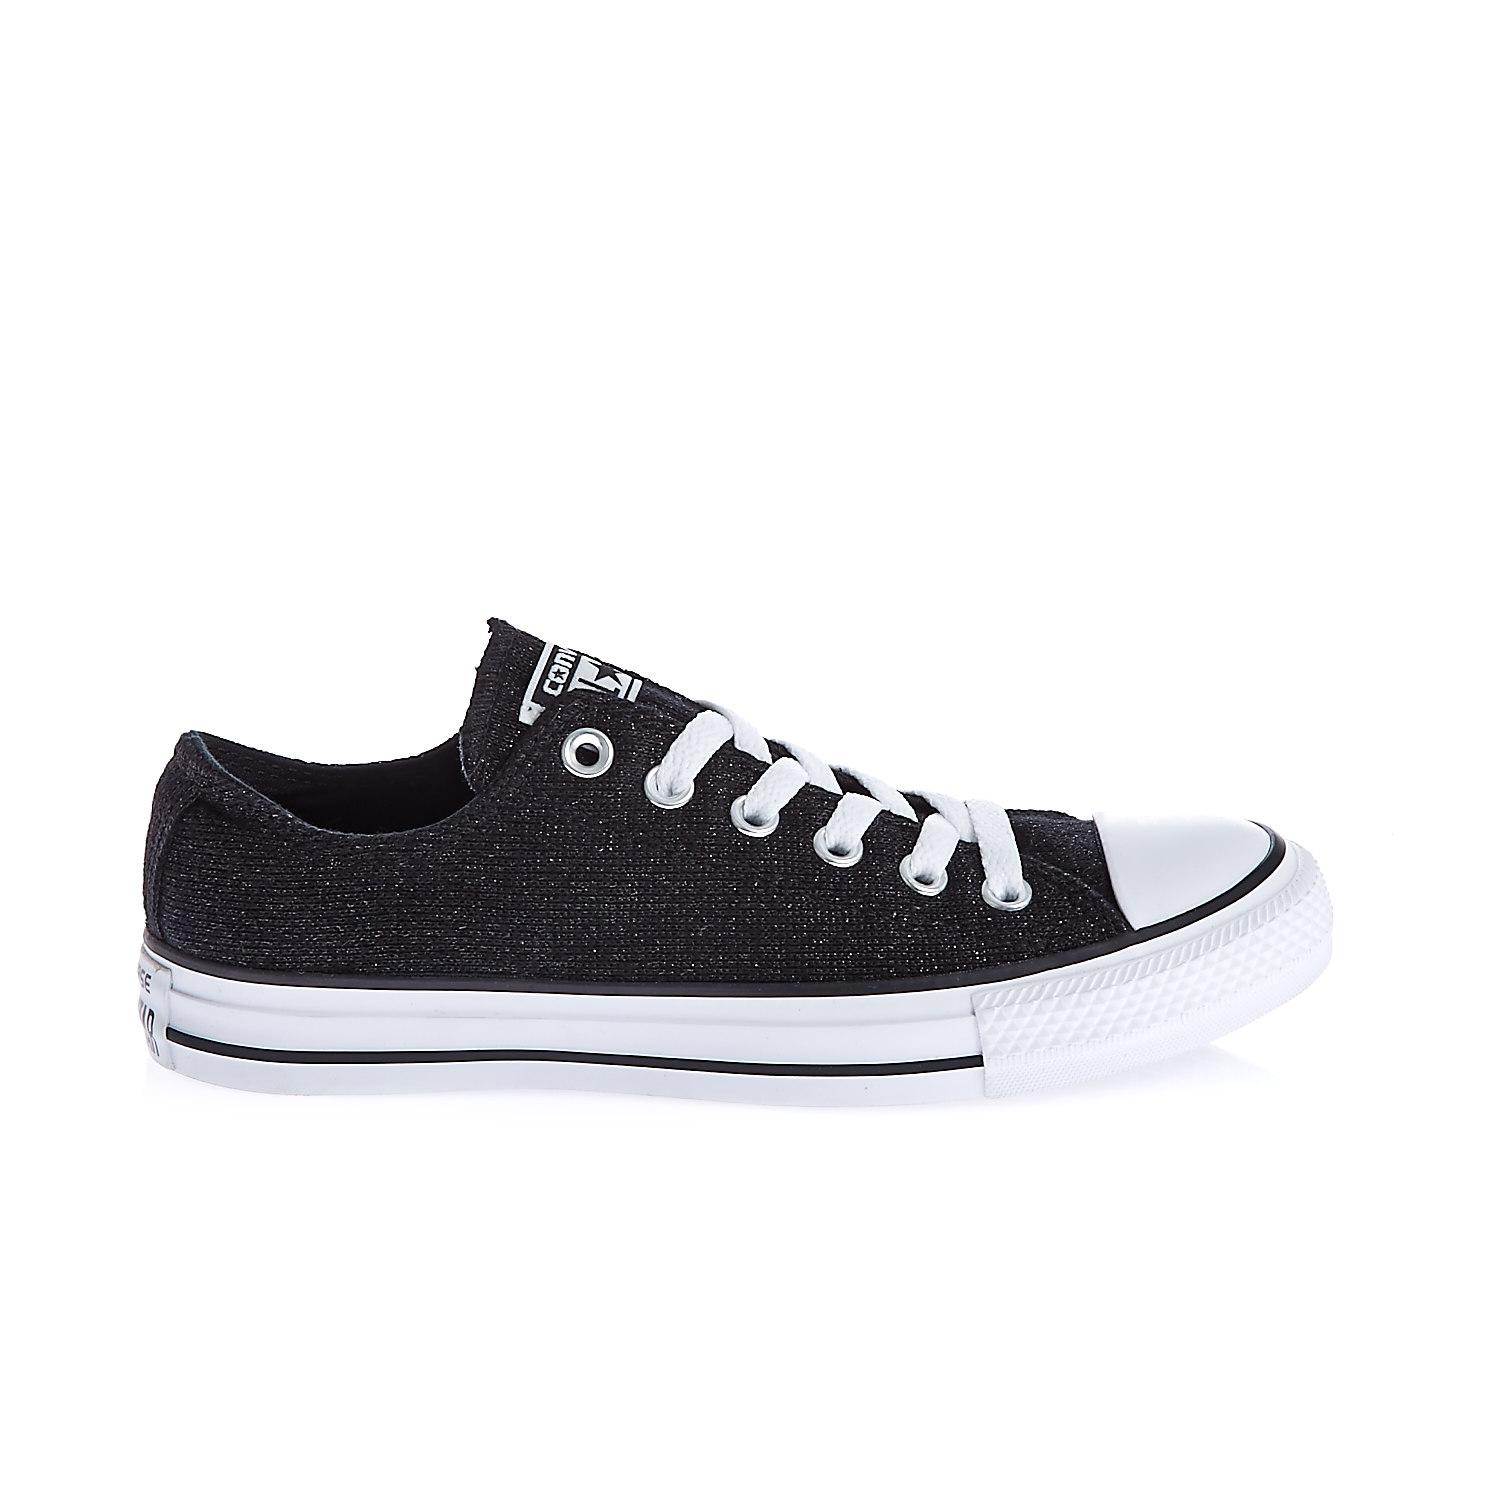 CONVERSE – Γυναικεία παπούτσια Chuck Taylor All Star Material μαύρα